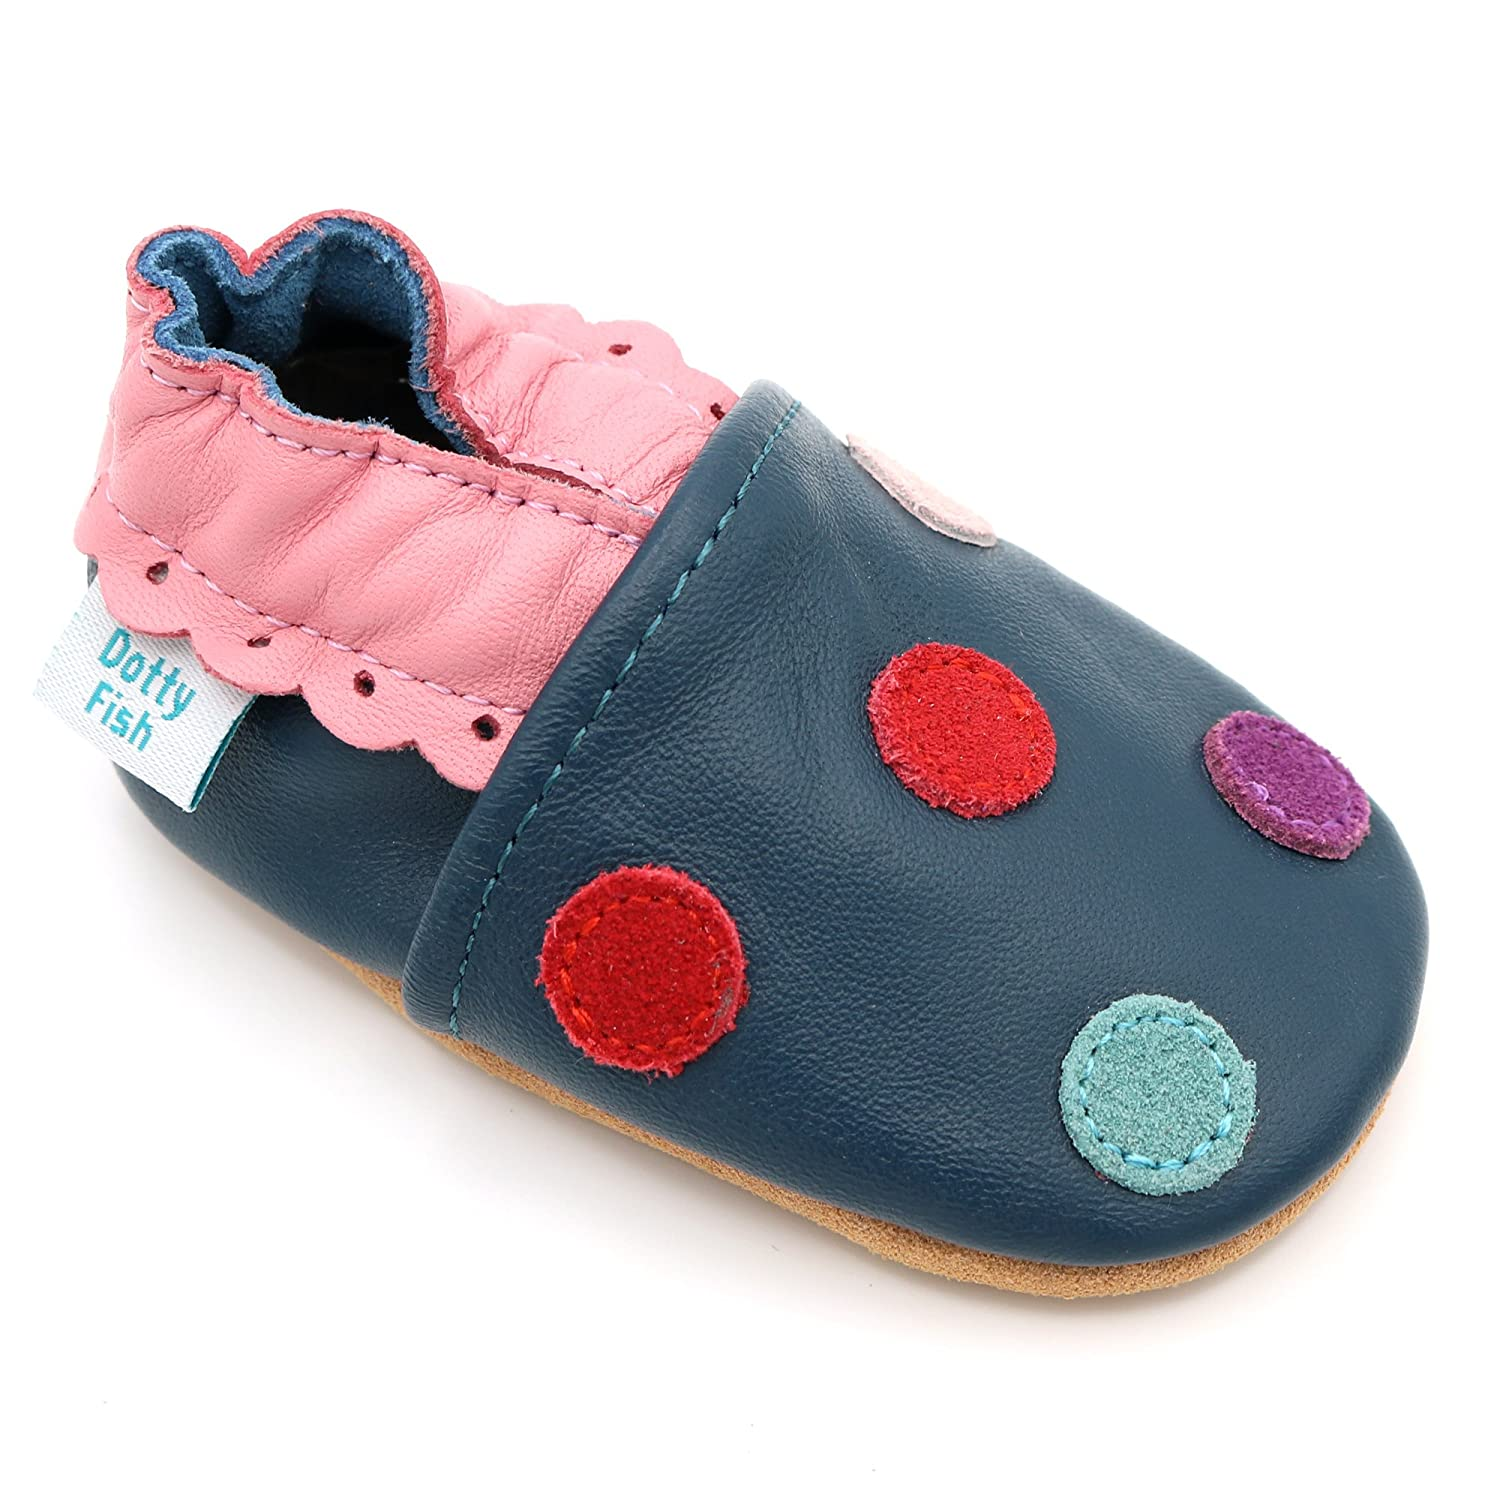 Dotty Fish Soft Leather Baby Shoes. Toddler Shoes. Girls. Multi-Coloured Spotty Designs. Newborn to 4-5 Years FBA-NAVYSPOT-P